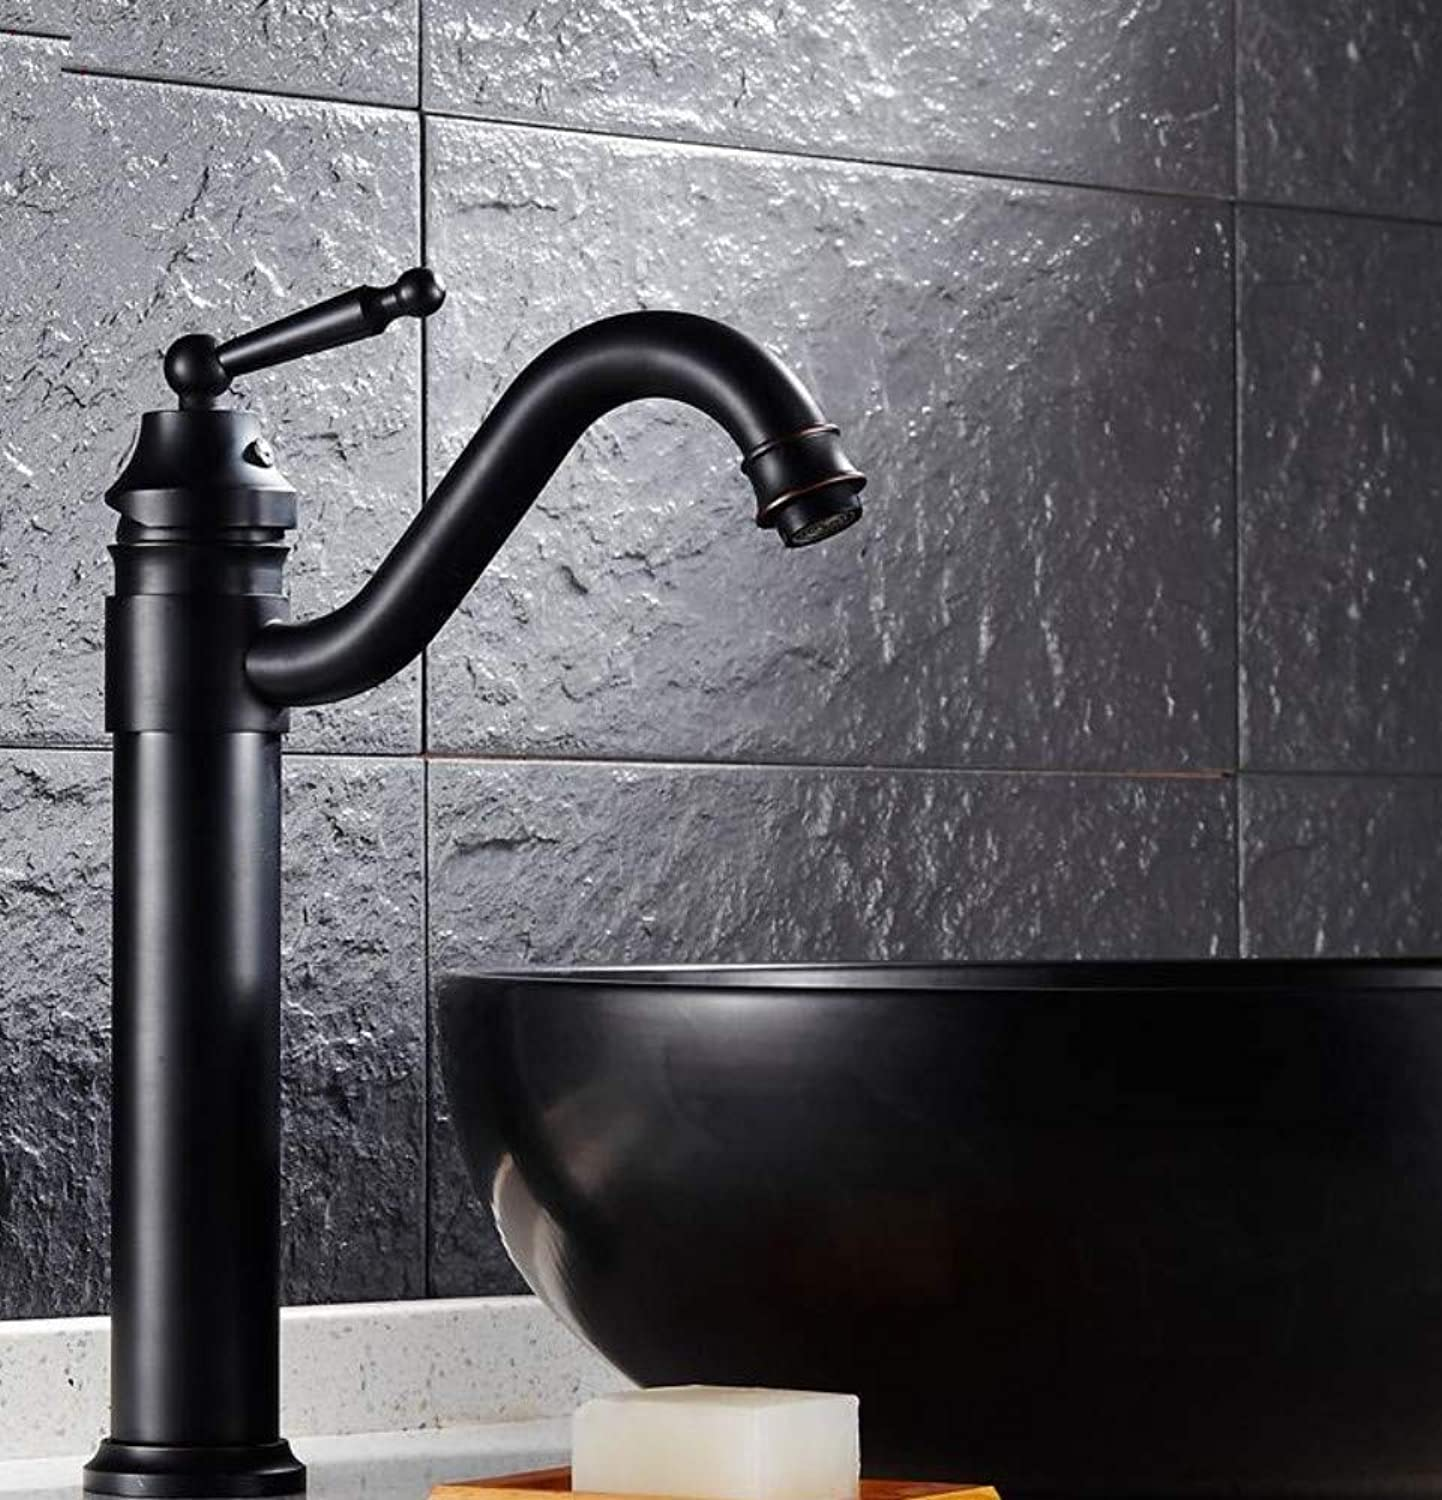 redOOY Black Brass Retro Bathroom Basin Sink Mixer Taps Deck Mounted Single Holder Swivel Spout Black Faucet